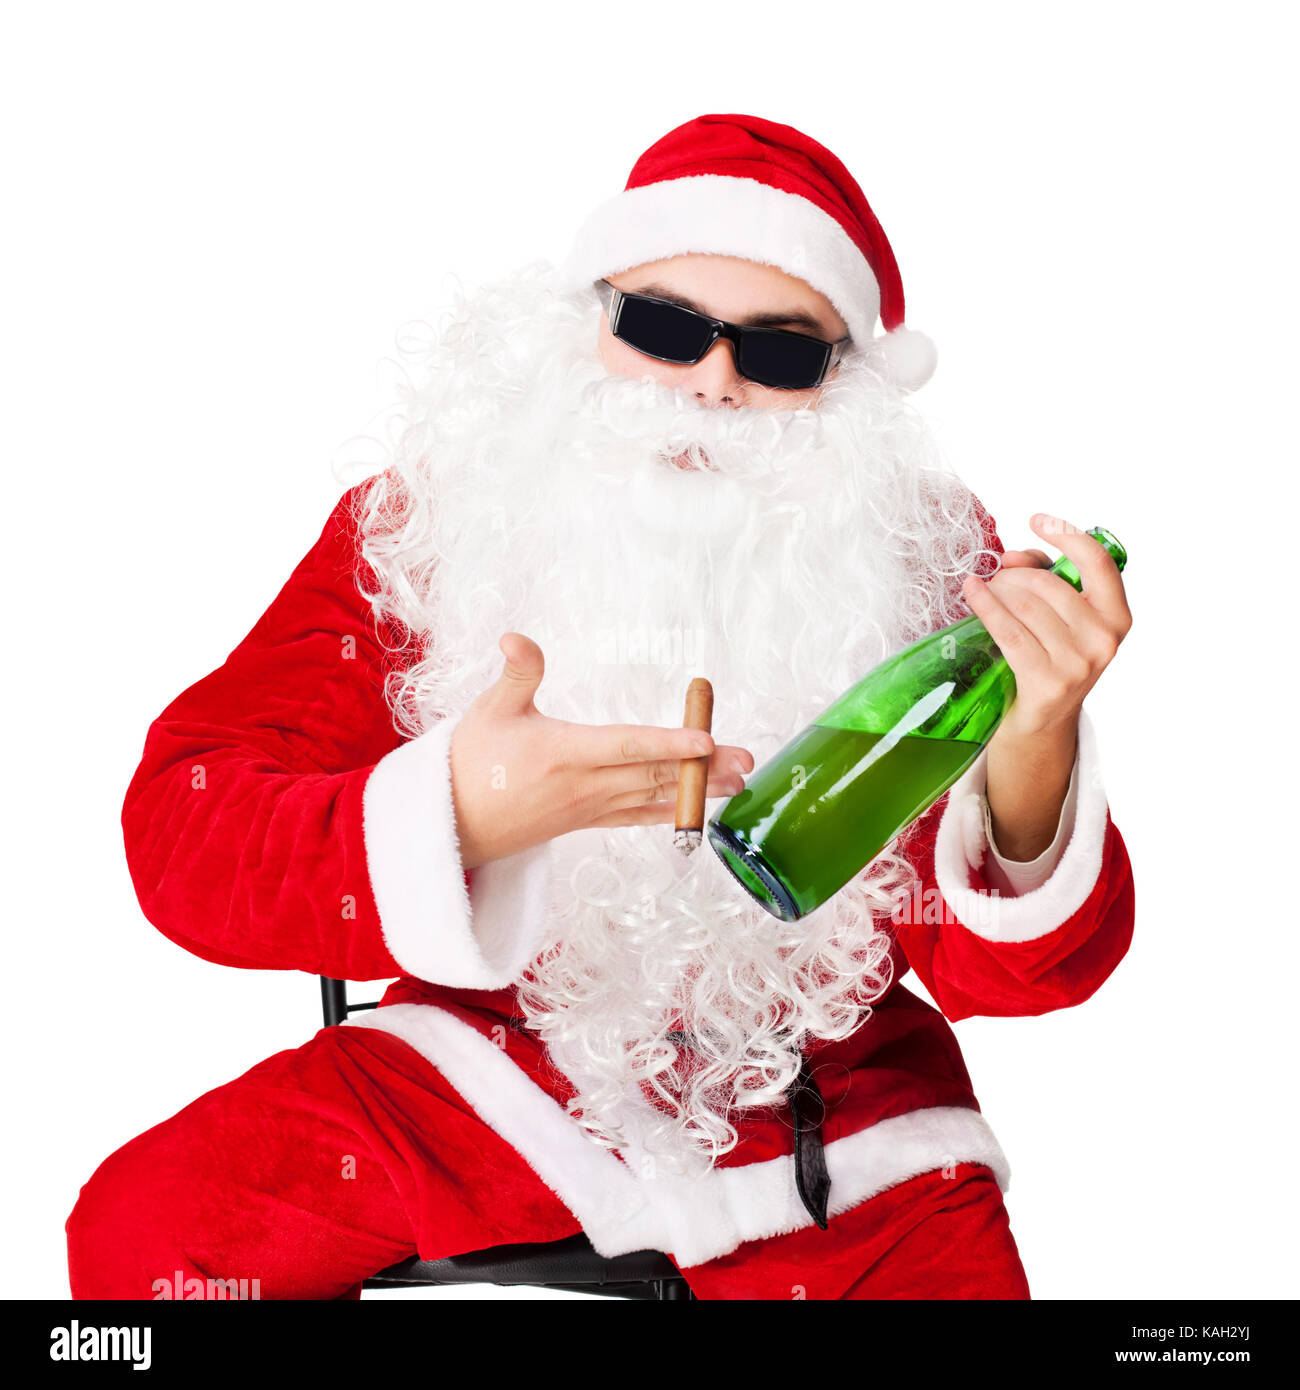 santa chair covers australia swing hammock with stand clause wearing sunglasses stock photos and